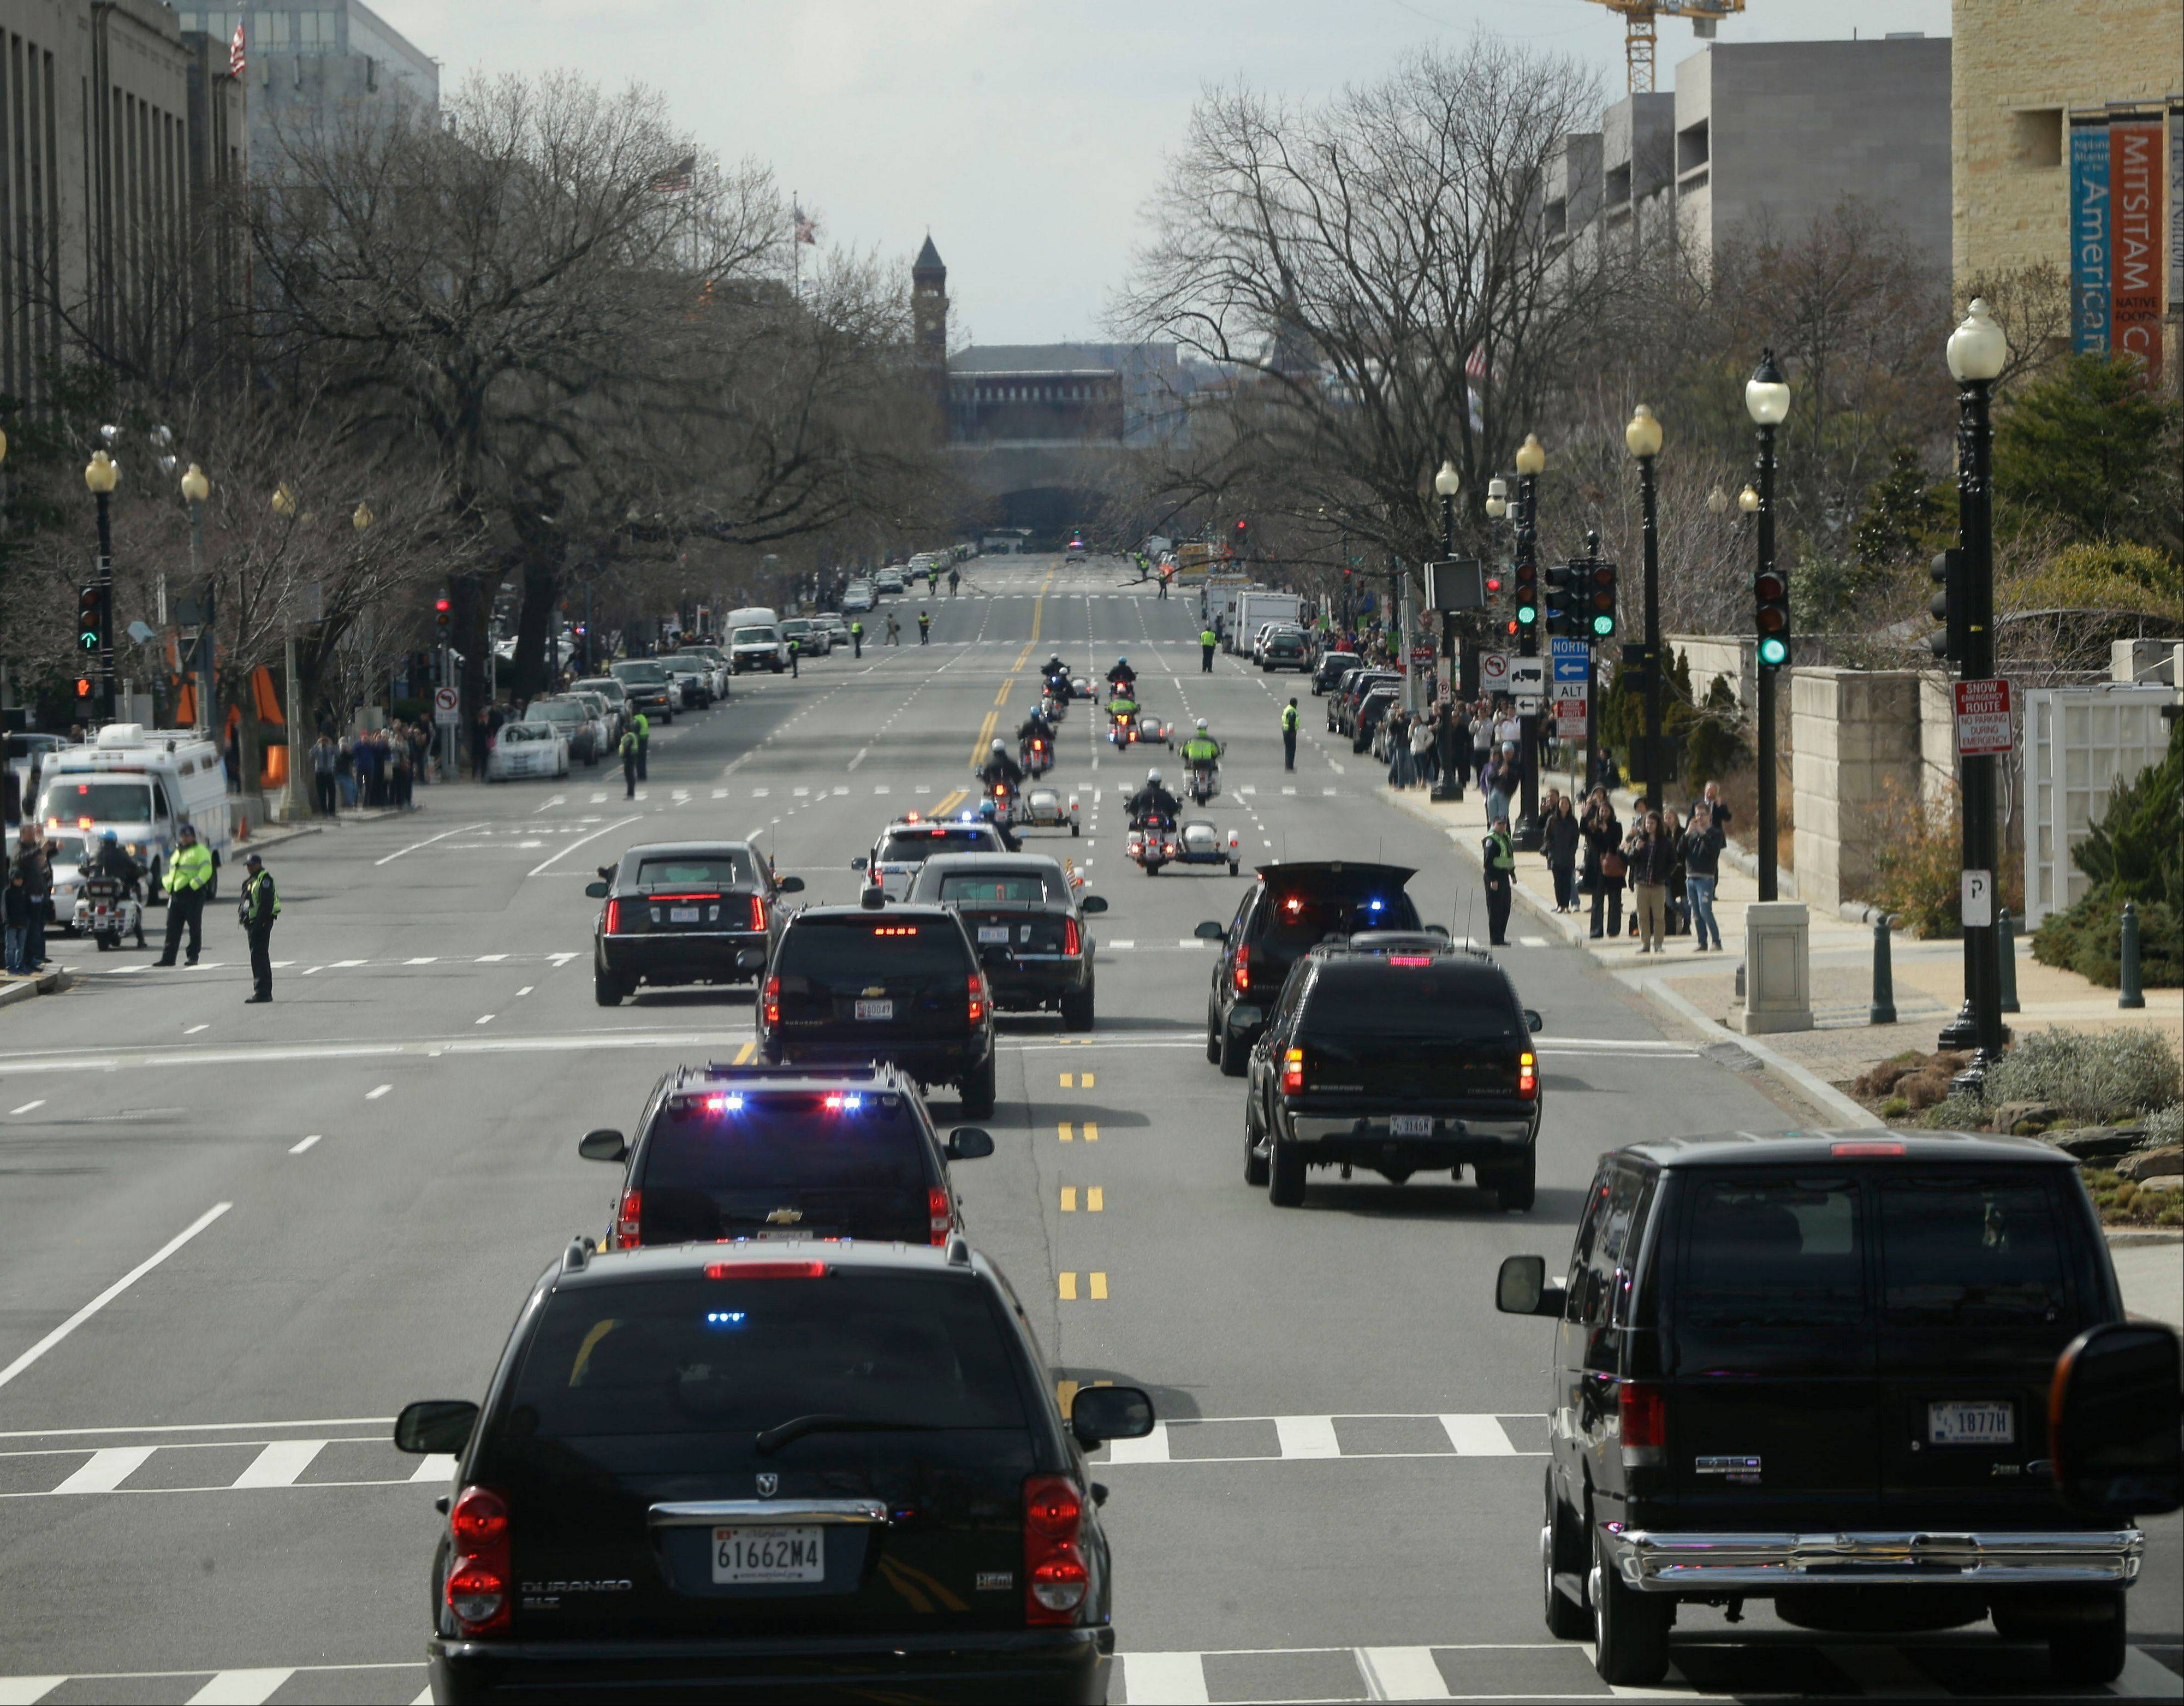 President Barack Obama's motorcade is seen on Independence Ave., on the return trip to the White House in Washington, Wednesday.